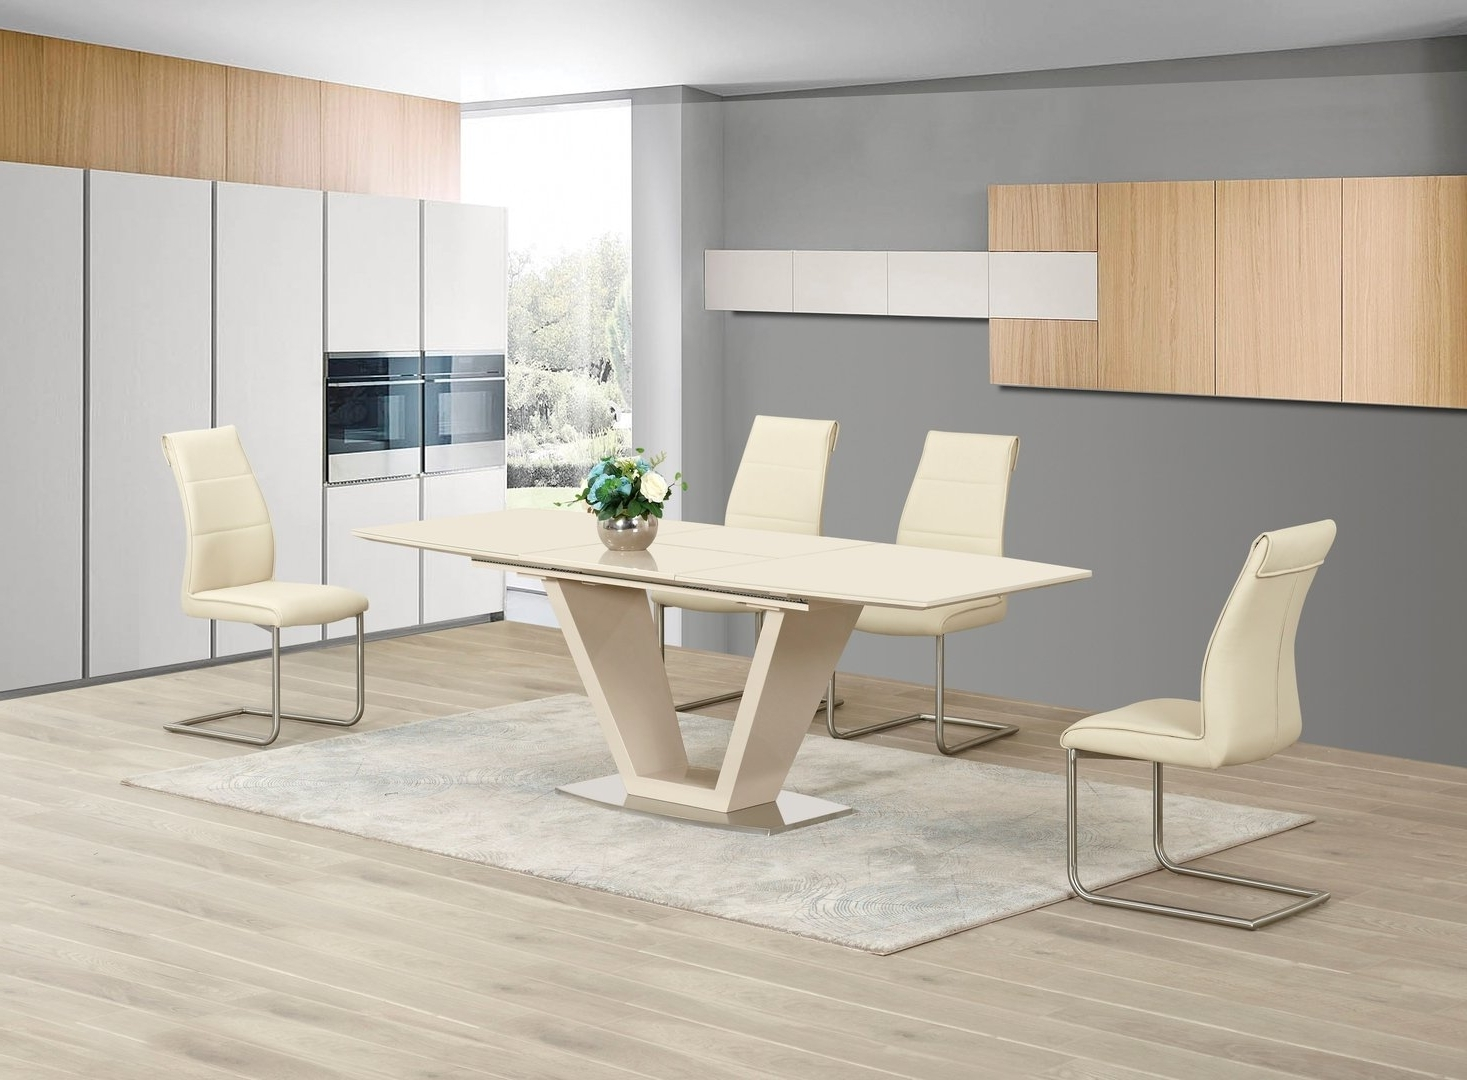 Best And Newest Hi Gloss Dining Tables Sets Throughout Hi Gloss Dining Table Sets – Castrophotos (Gallery 8 of 25)